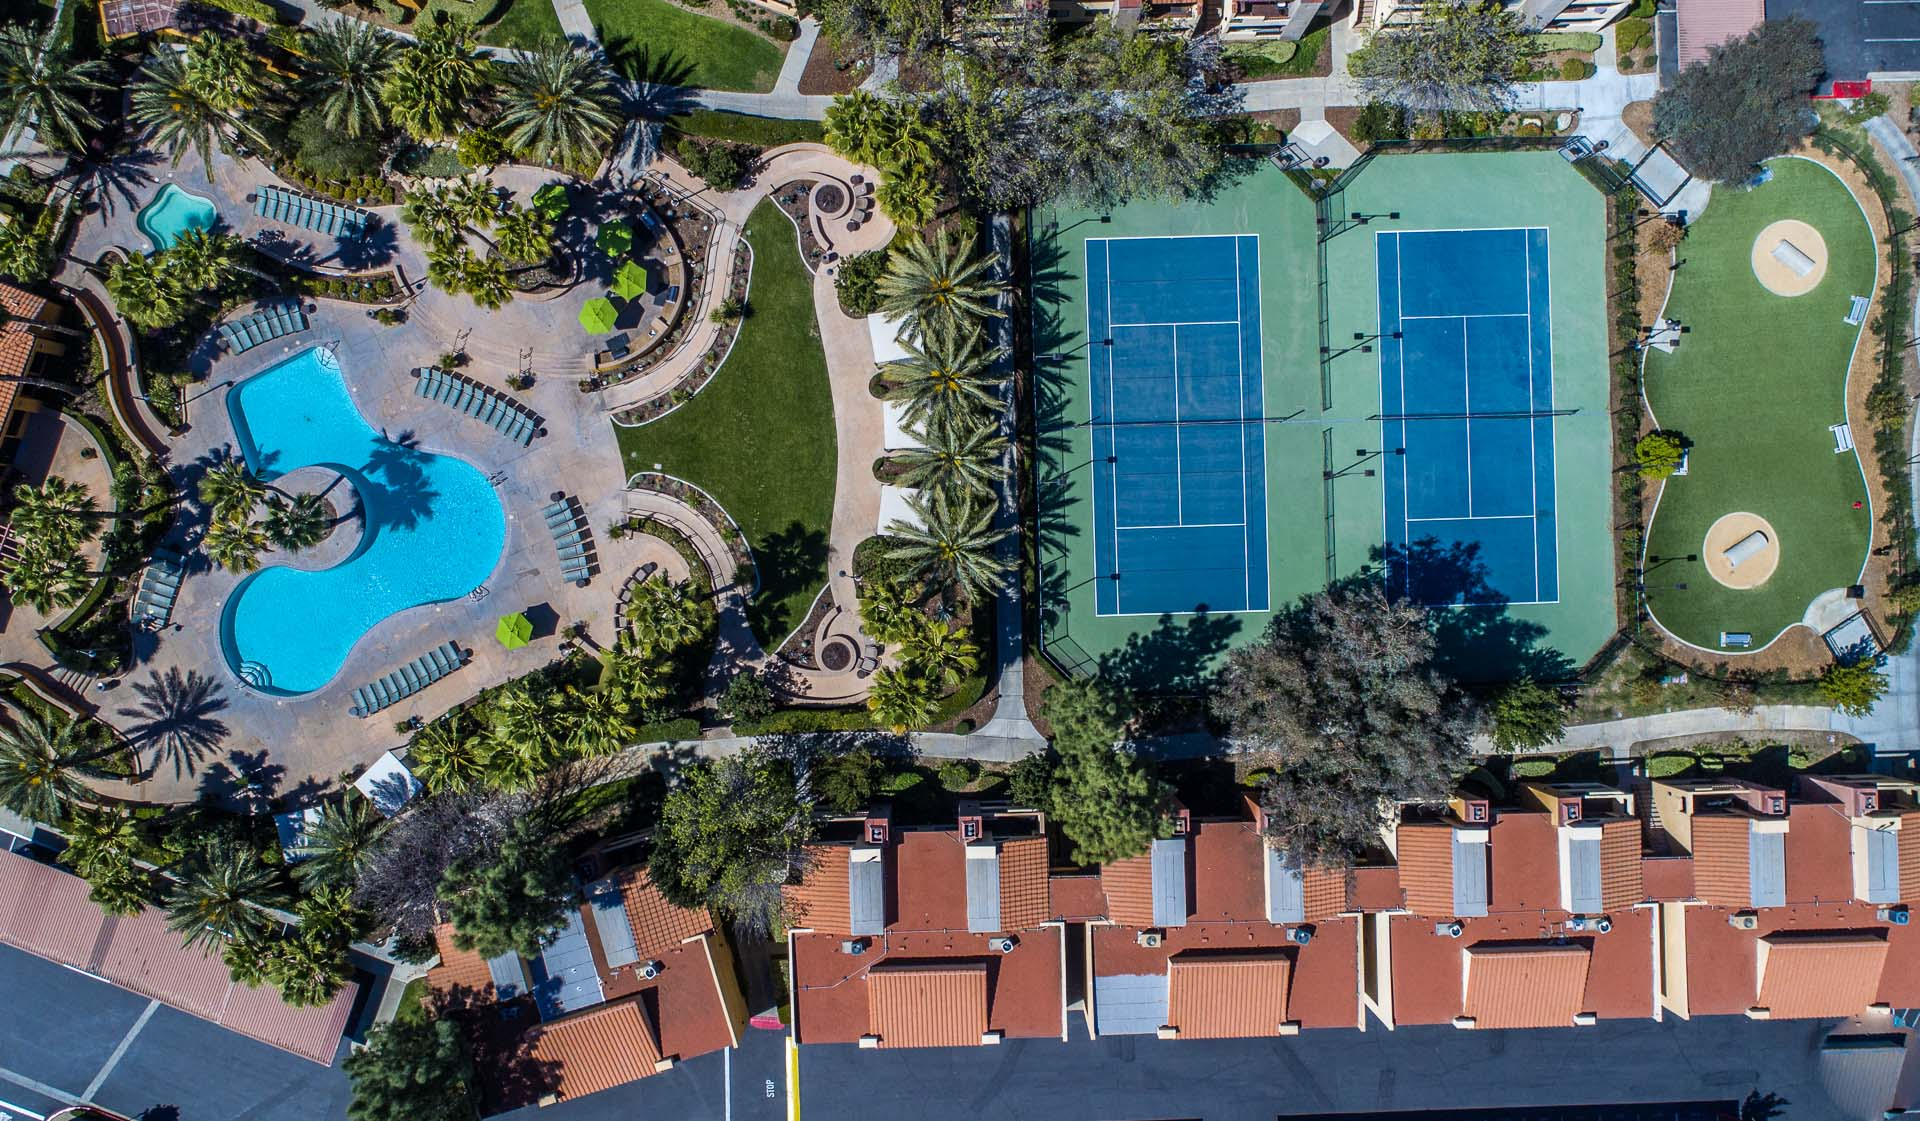 Malibu Canyon - Calabasas, CA - Malibu Canyon Neighborhood